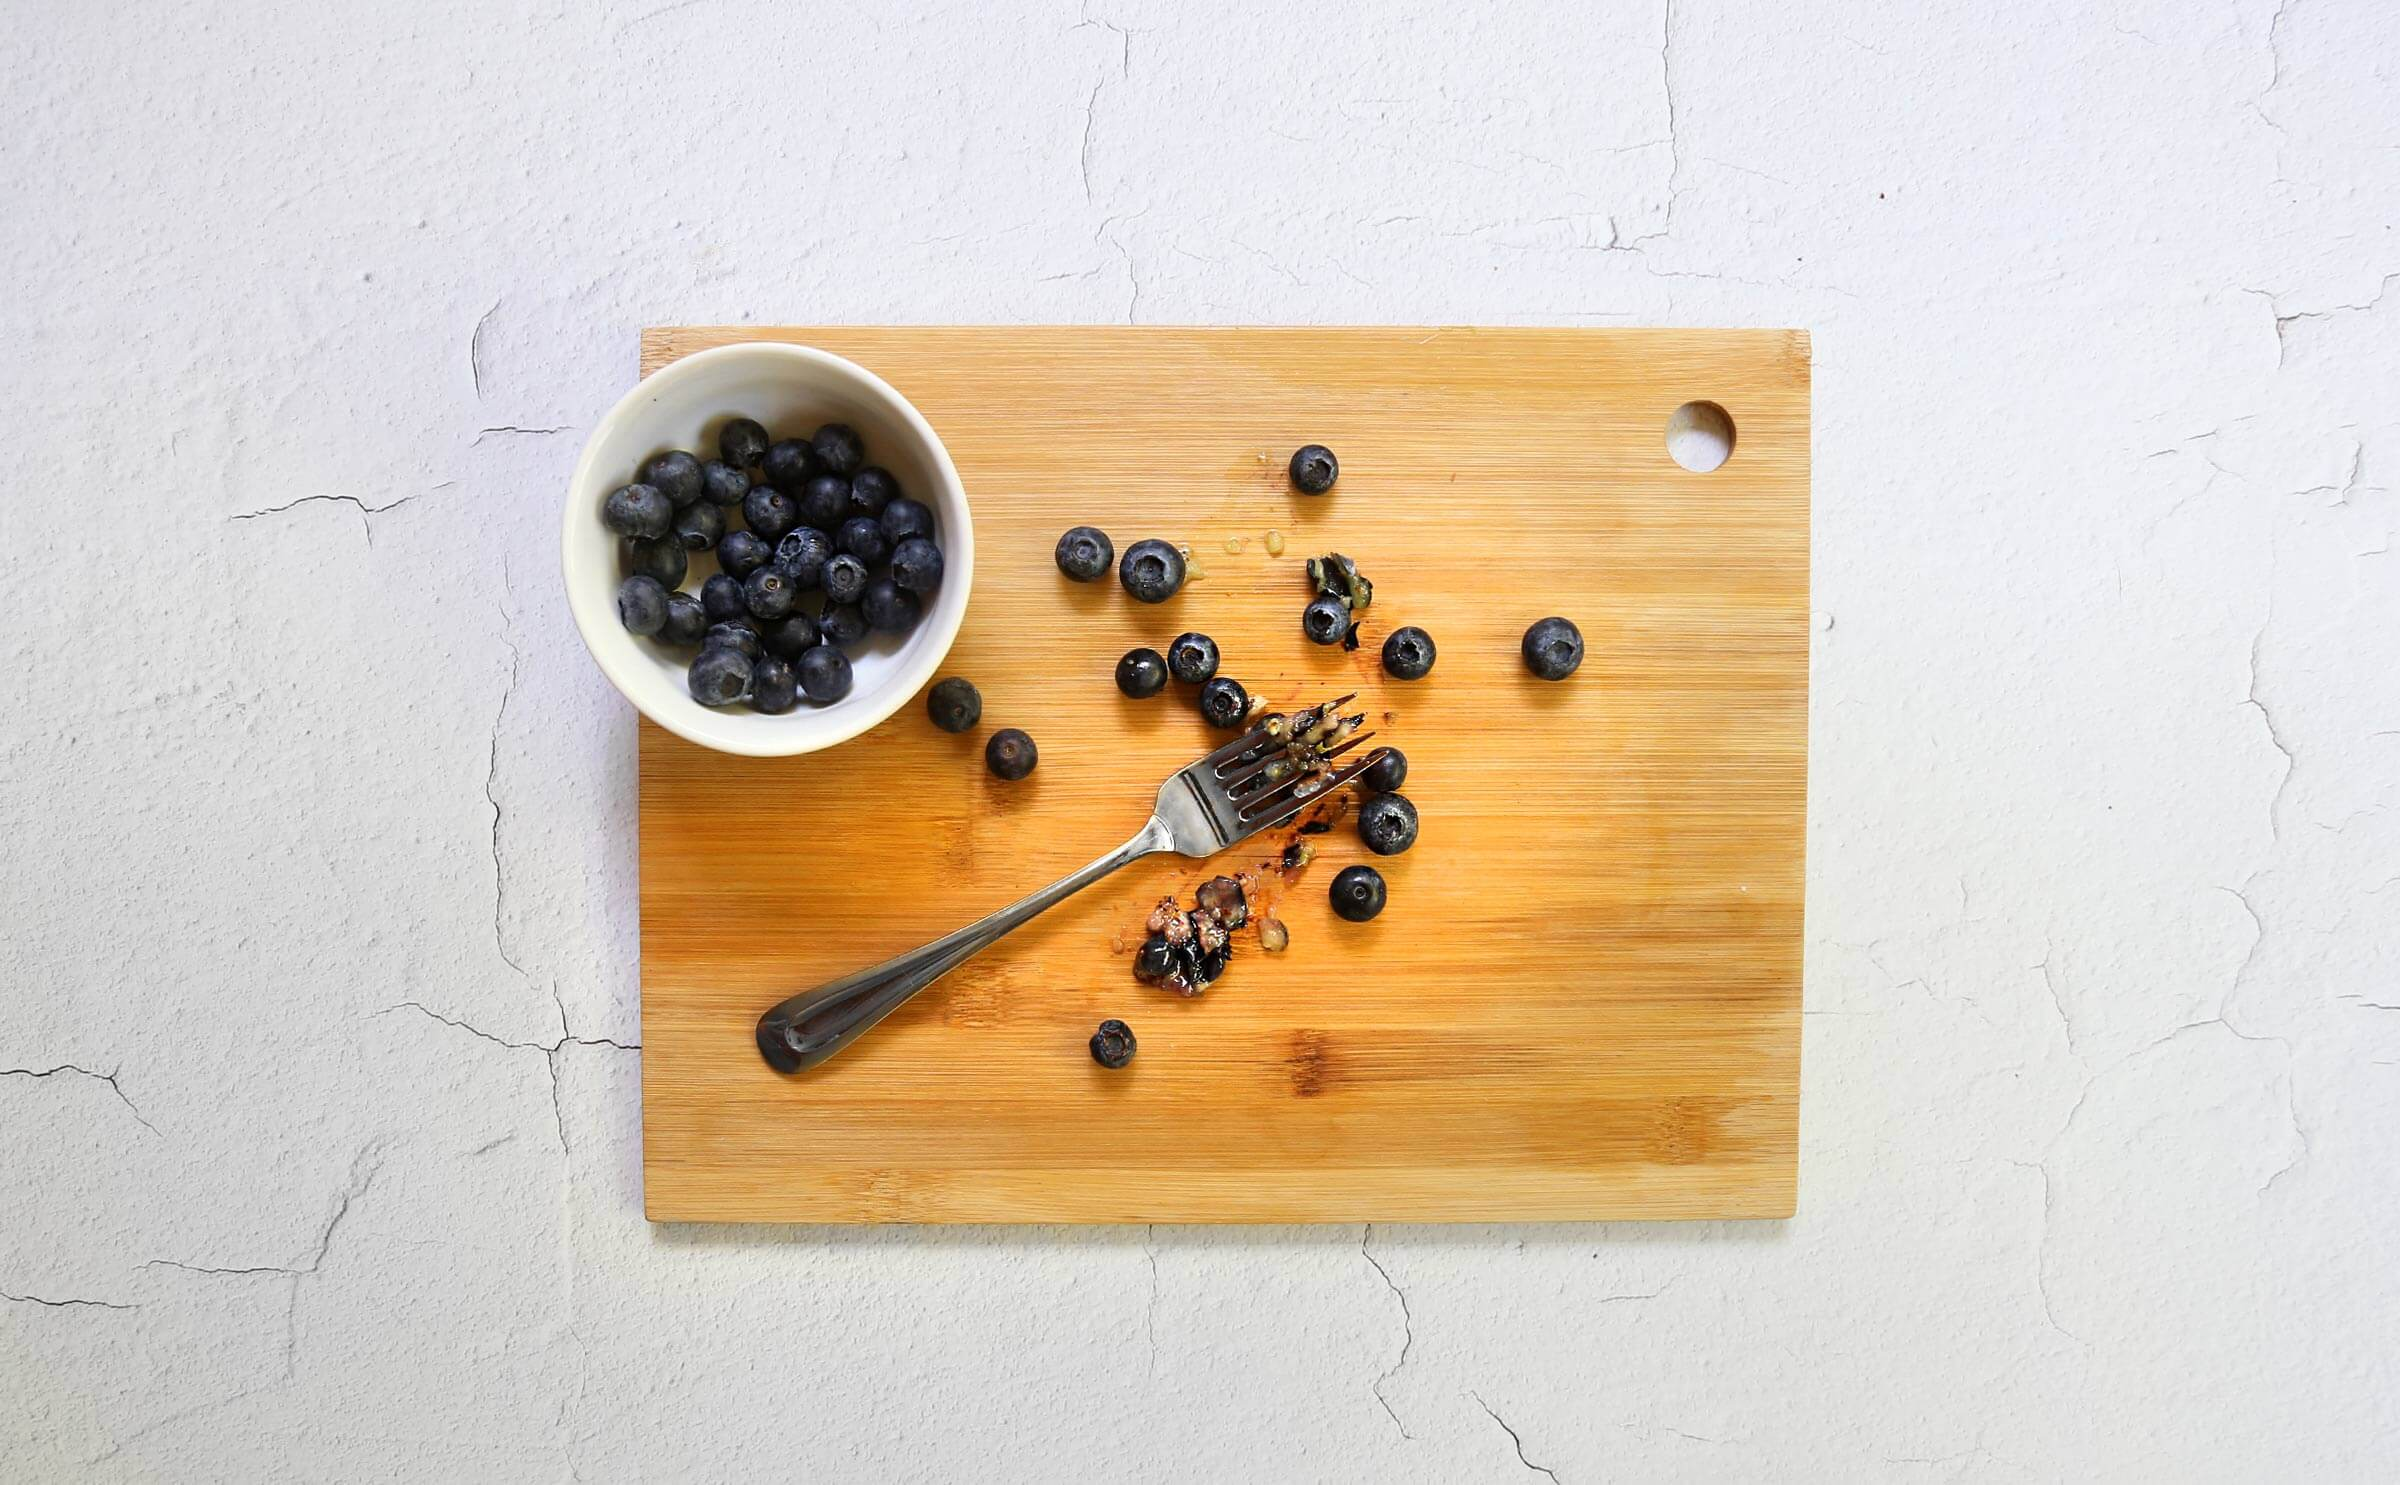 Blueberries-for-dogs-4